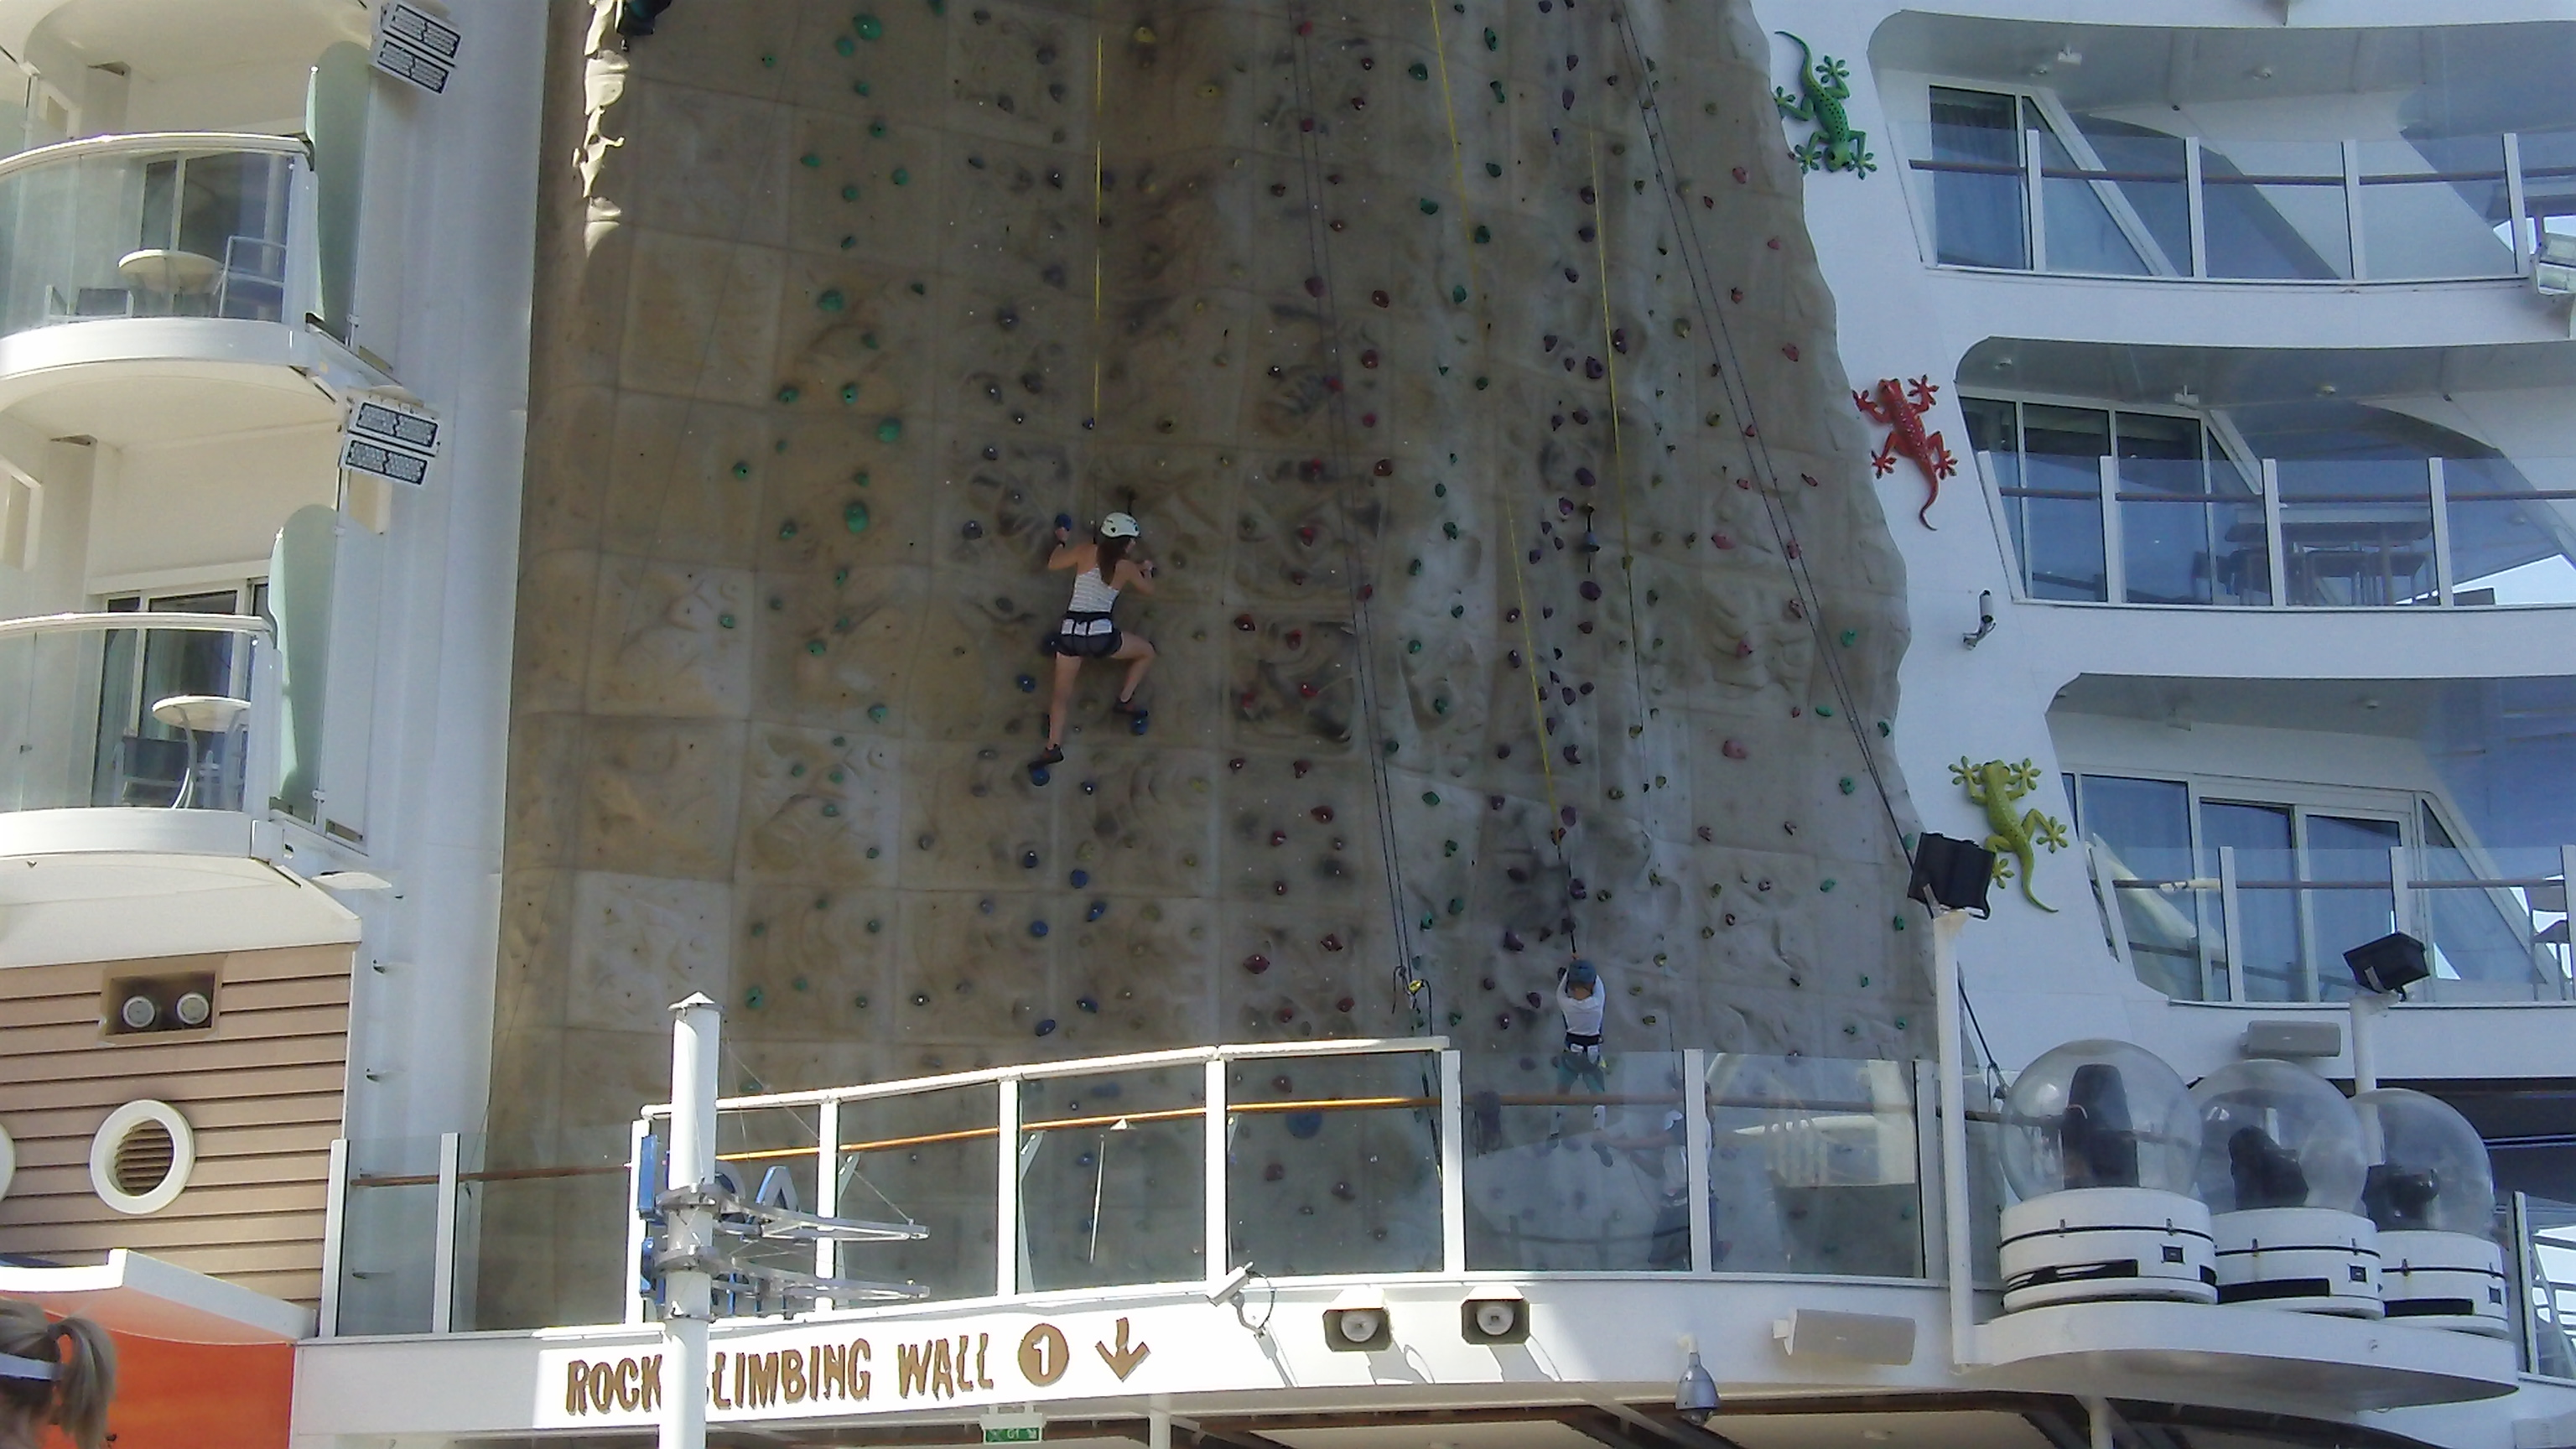 Rock Climbing Wall. Allure of the Seas. Click to view larger version